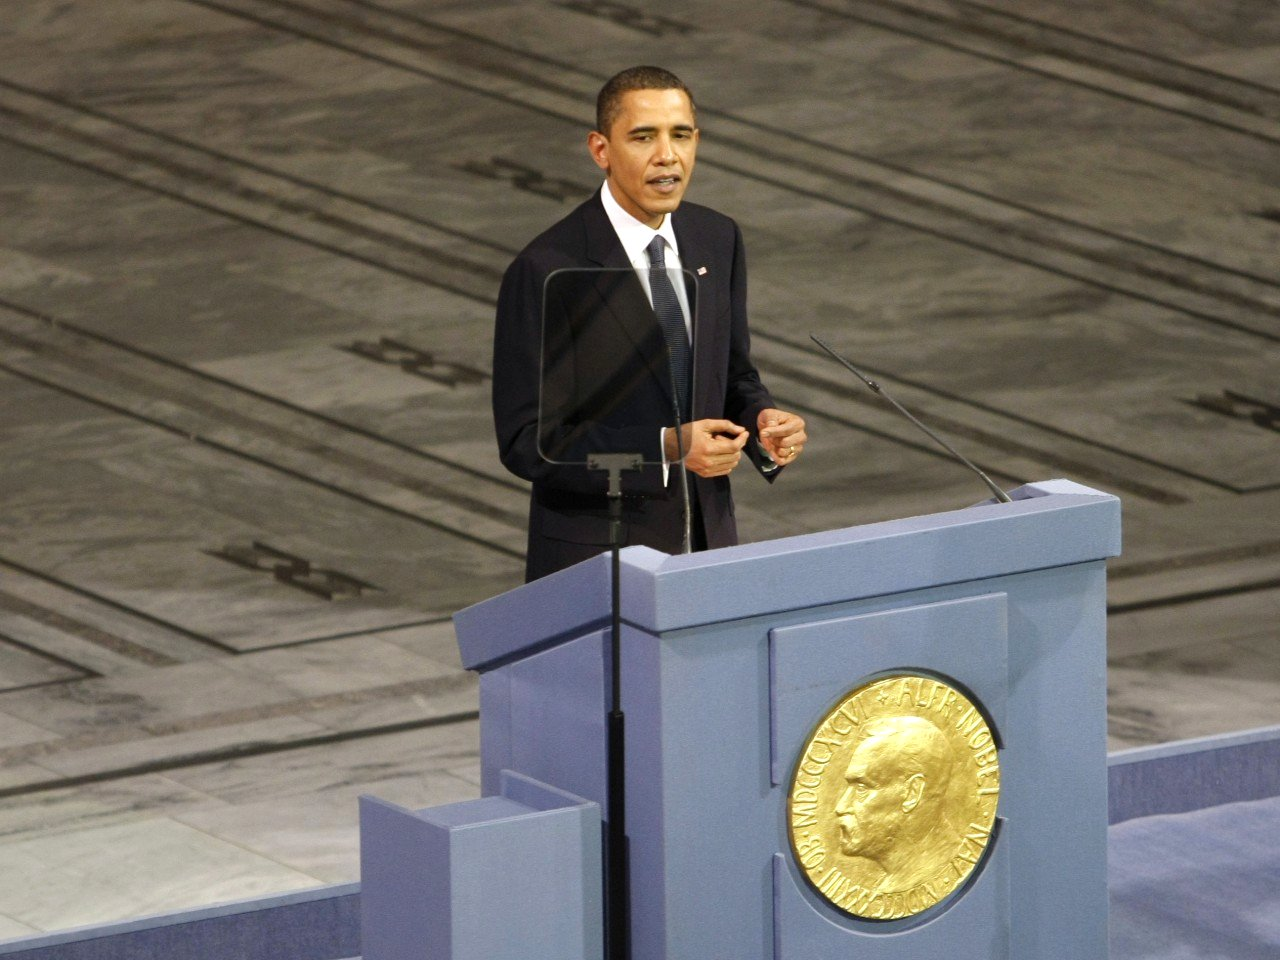 President Barack Obama's Accceptance of Nobel Peace Prize Google image from http://media.salon.com/2009/12/the_strange_bipartisan_consensus_on_obamas_nobel_speech-1280x960.jpg